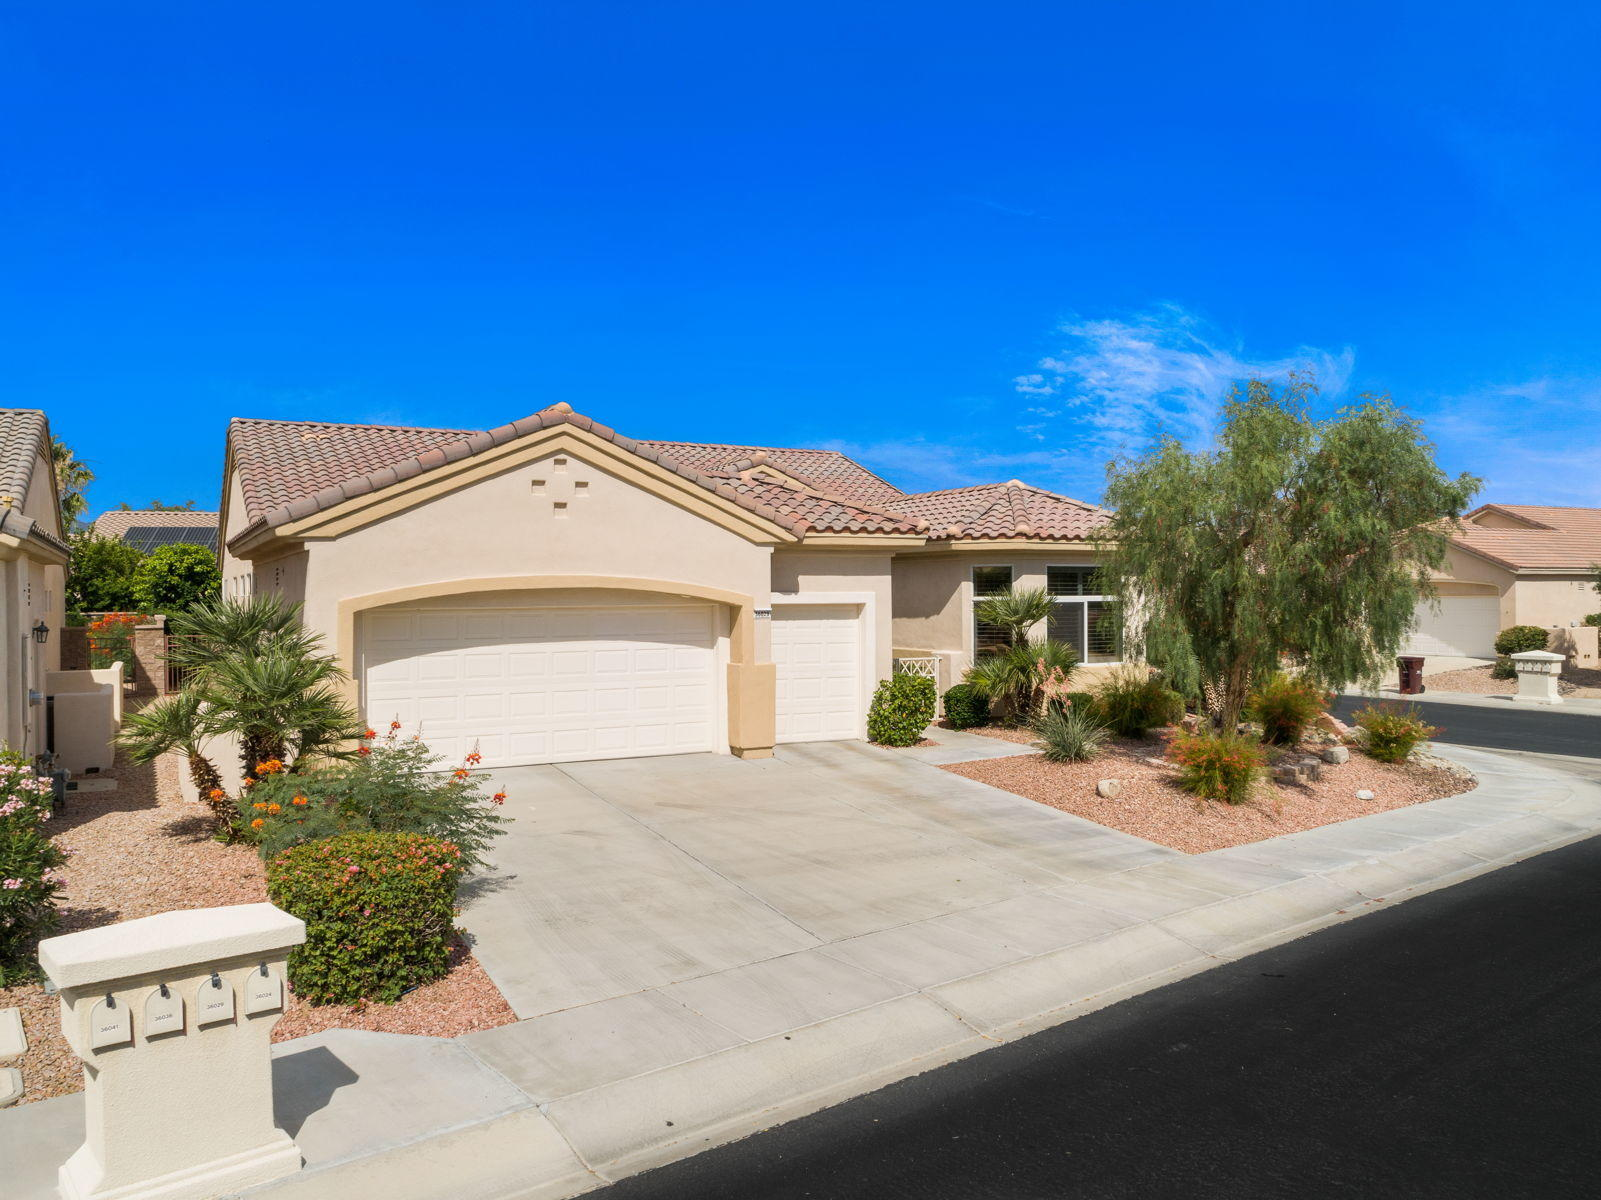 Photo of 36029 Palomar Way, Palm Desert, CA 92211